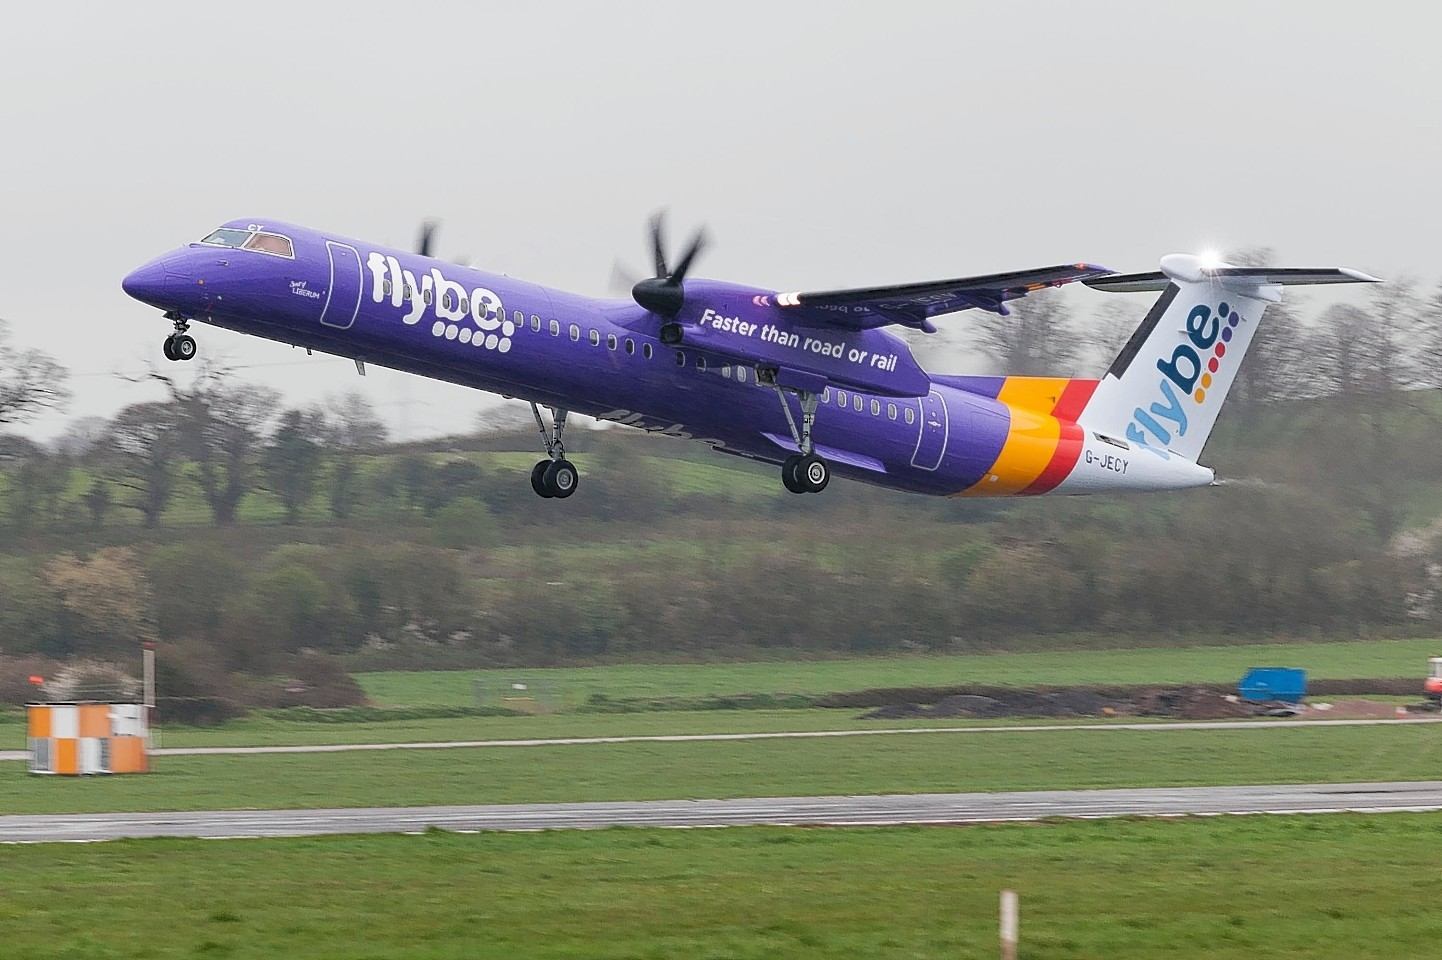 Flybe shares increased in value 16% yesterday.